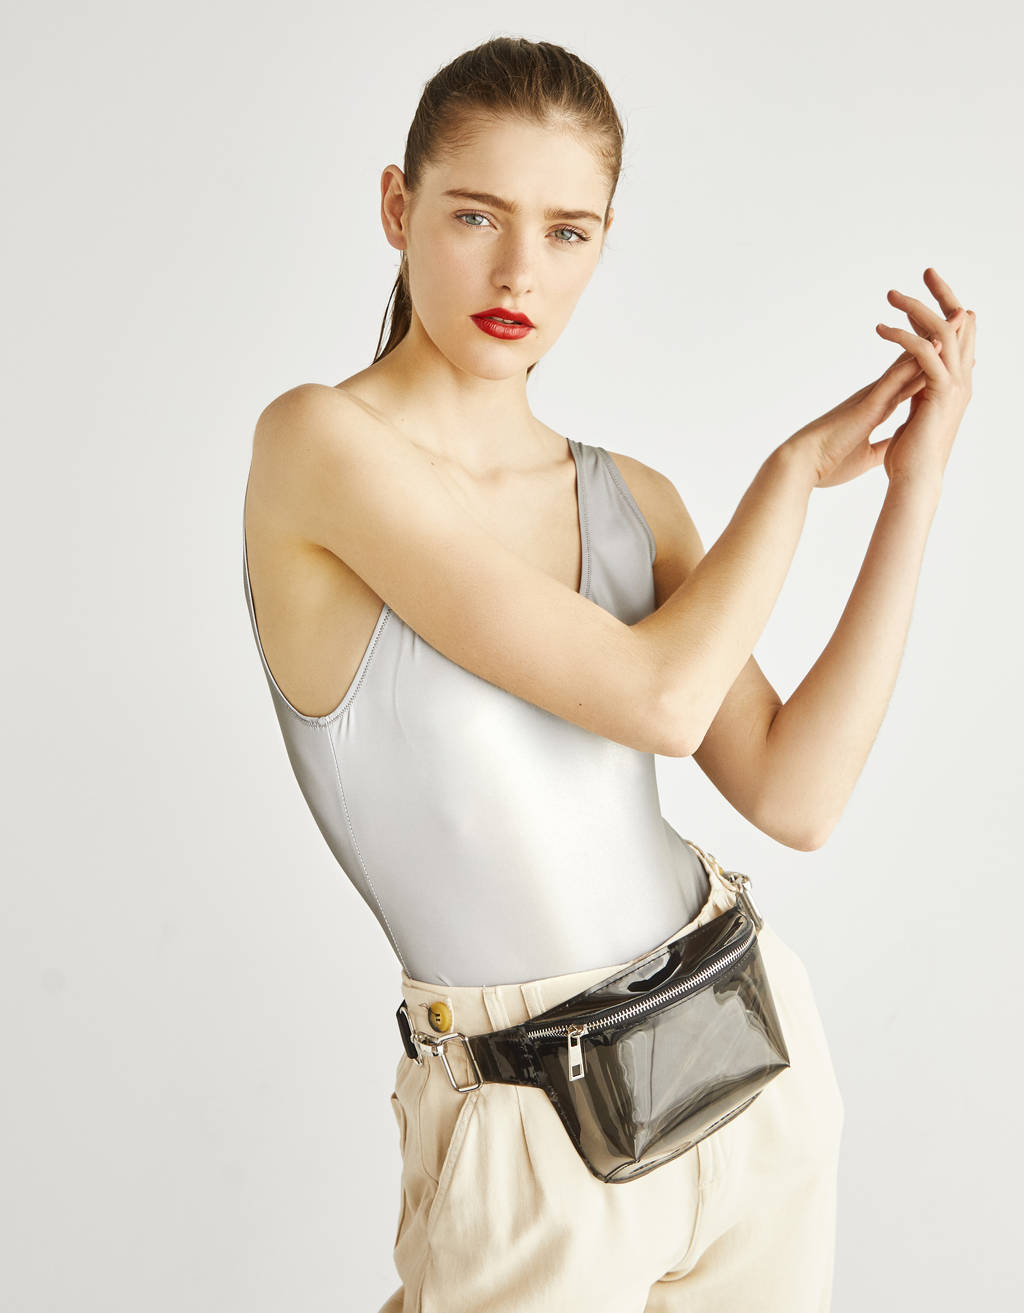 Reflective bodysuit with straps